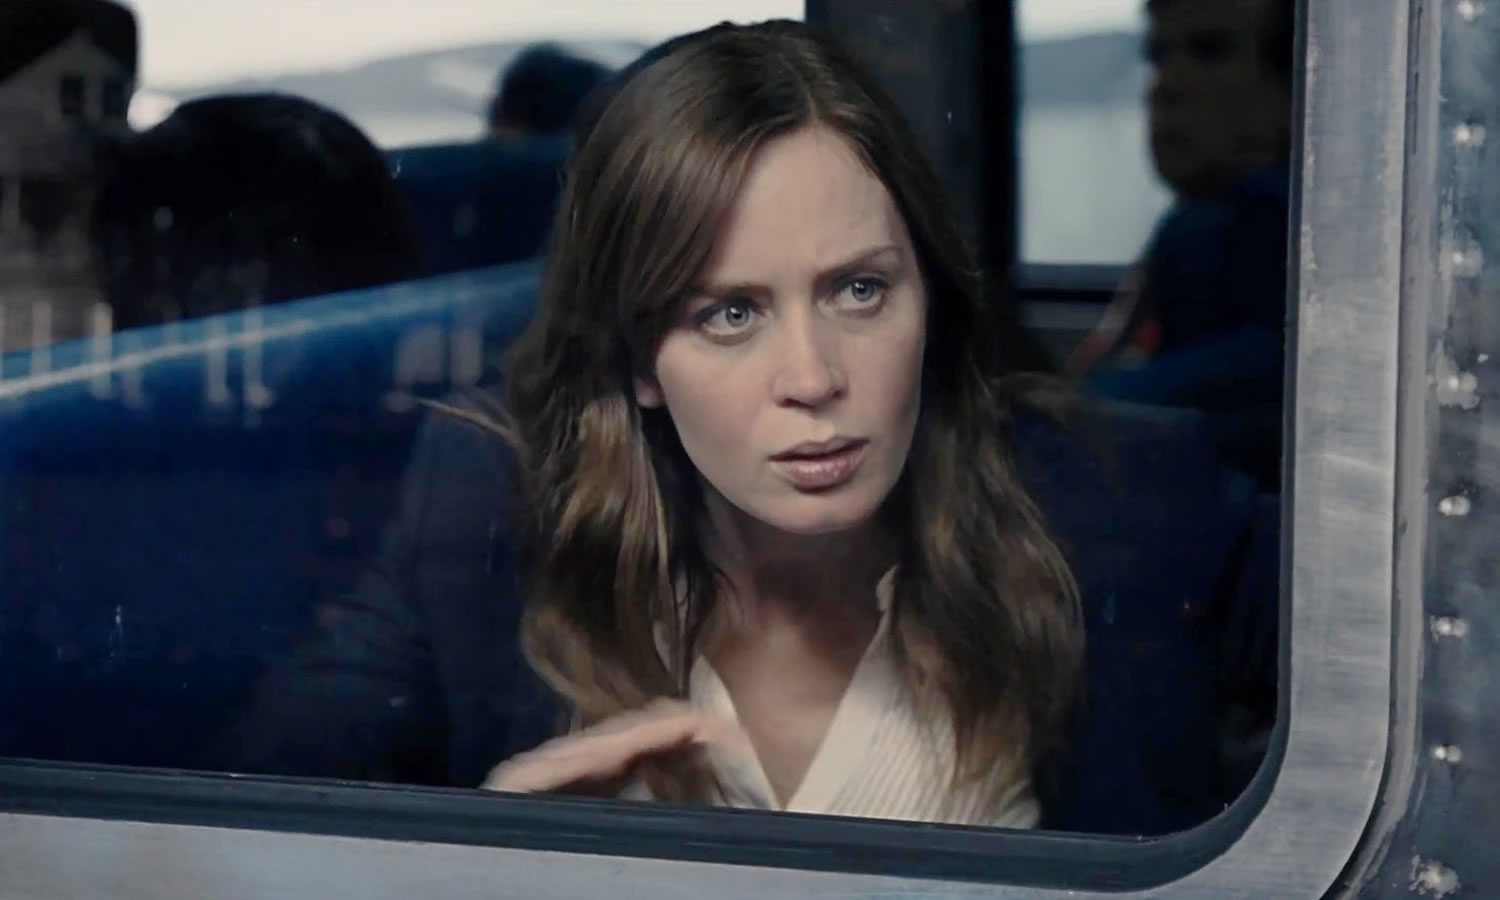 Crítica: A Garota no Trem (The Girl On The Train, EUA, 2016)